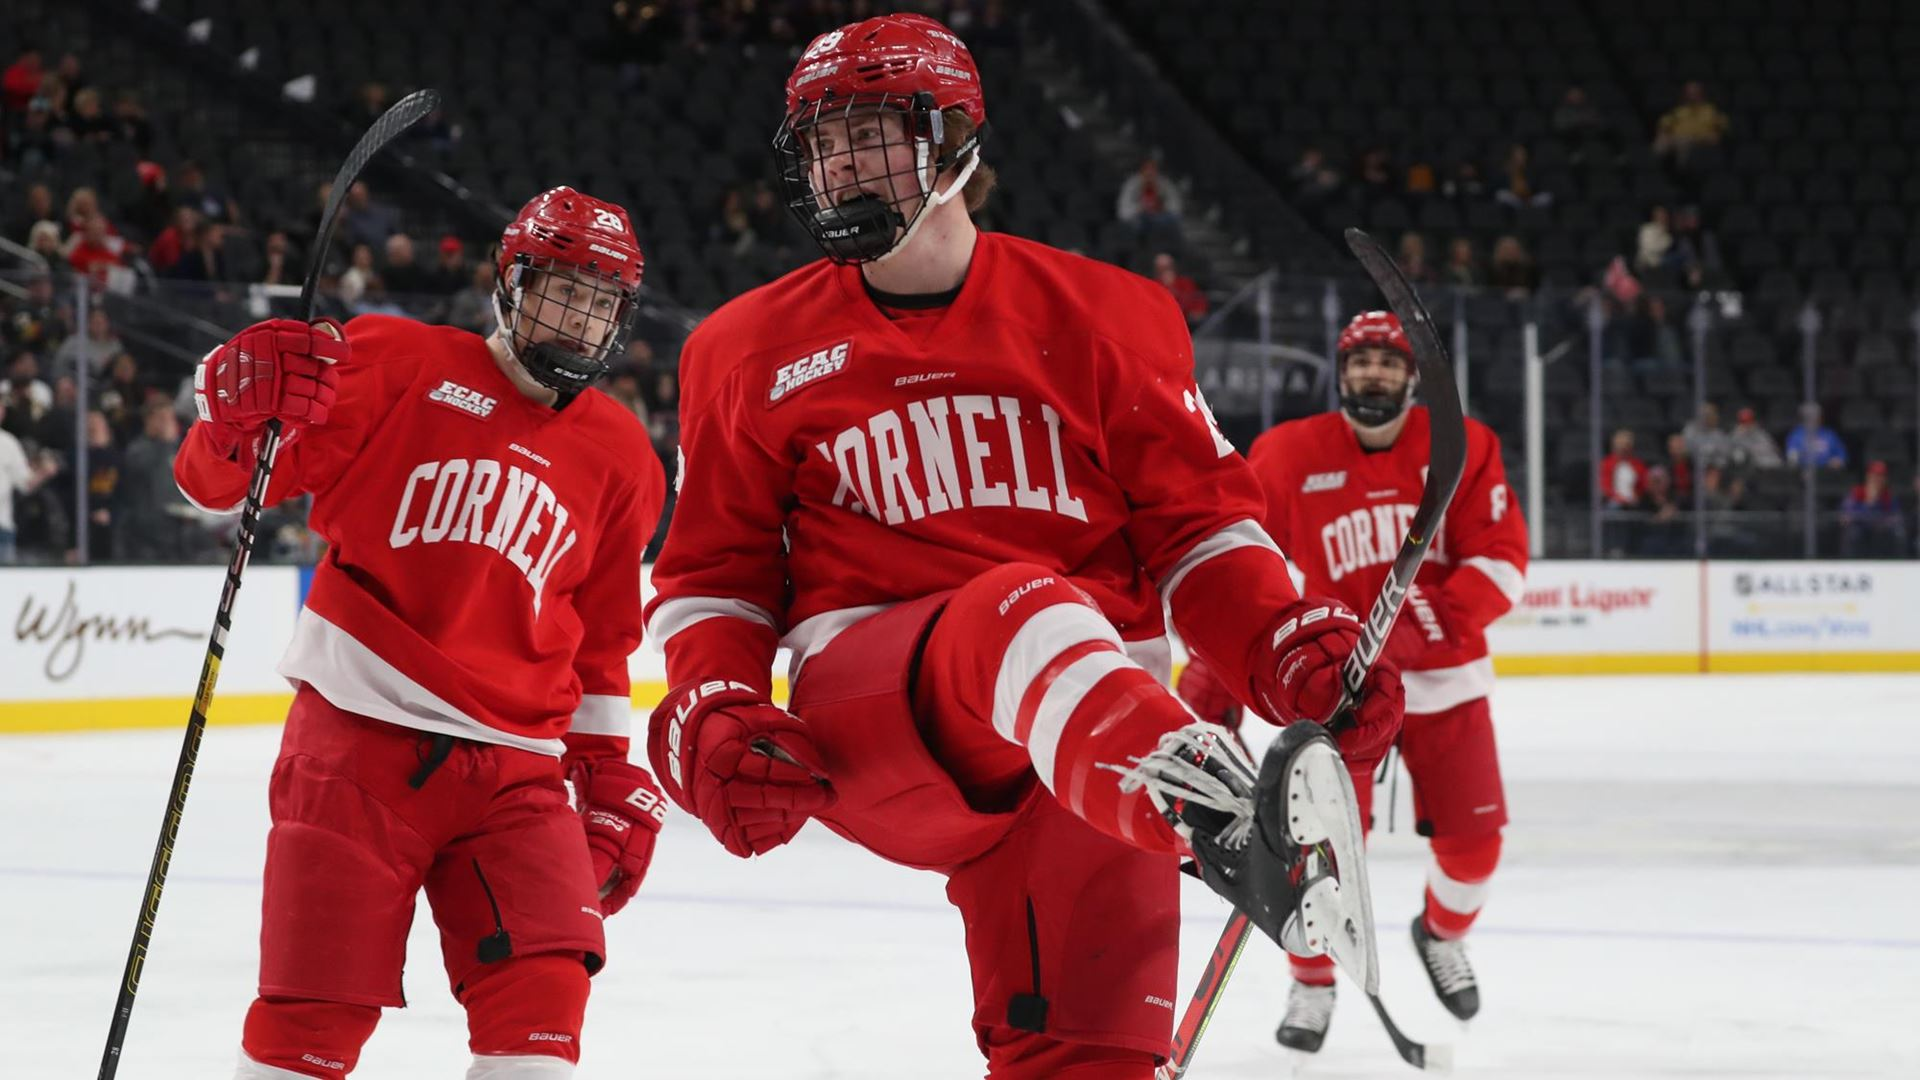 Cornell cruises to a 5-2 win over Ohio State